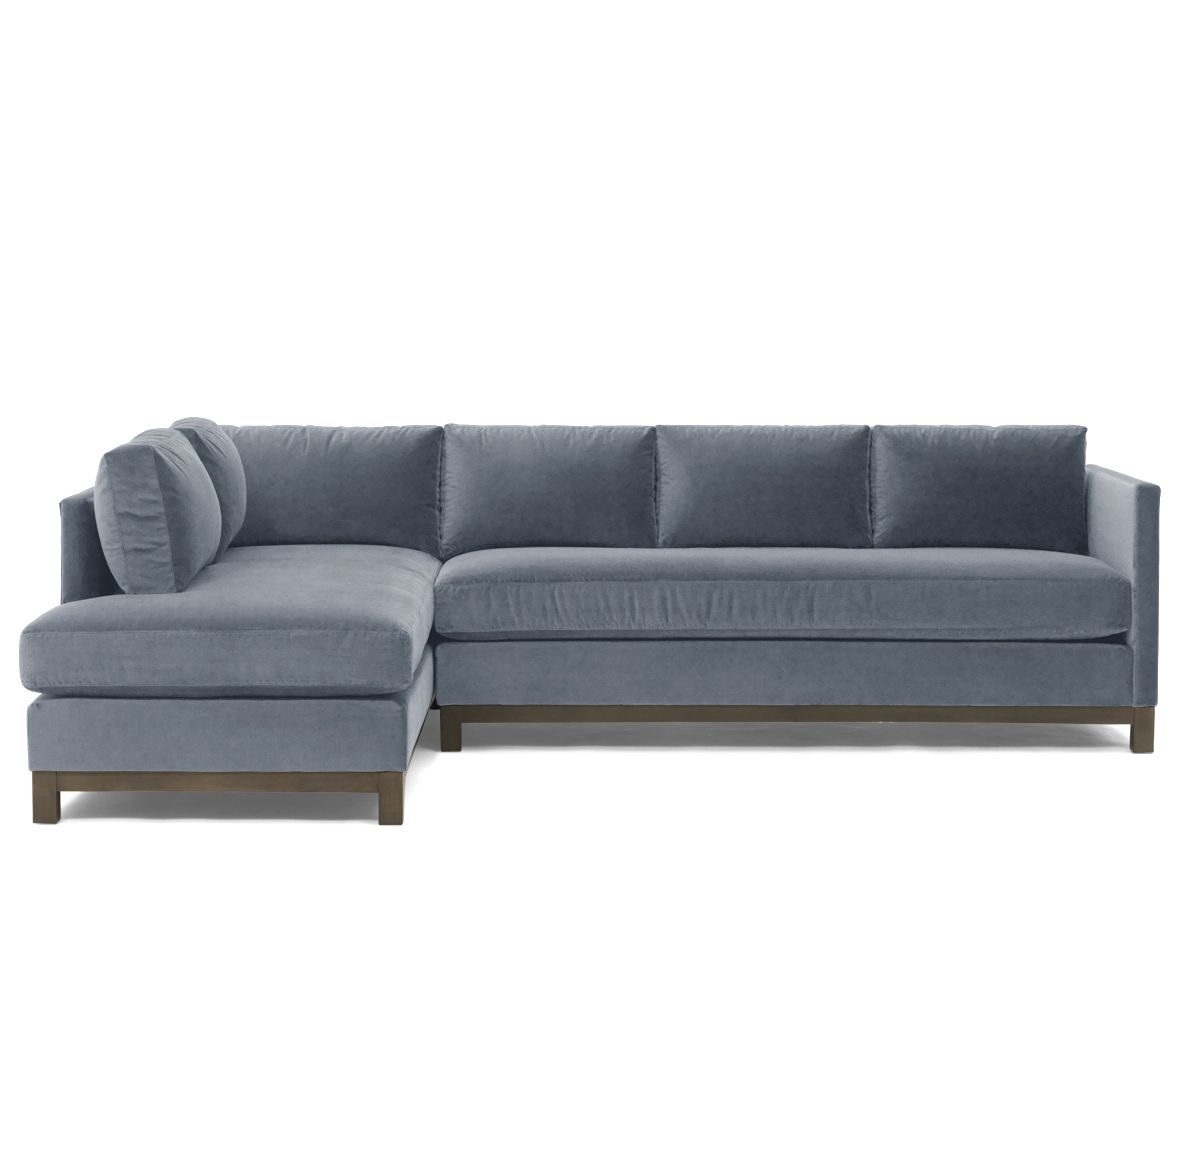 Clifton Right Sectional Sectional Sofa Sofa Sectional Sofa Layout